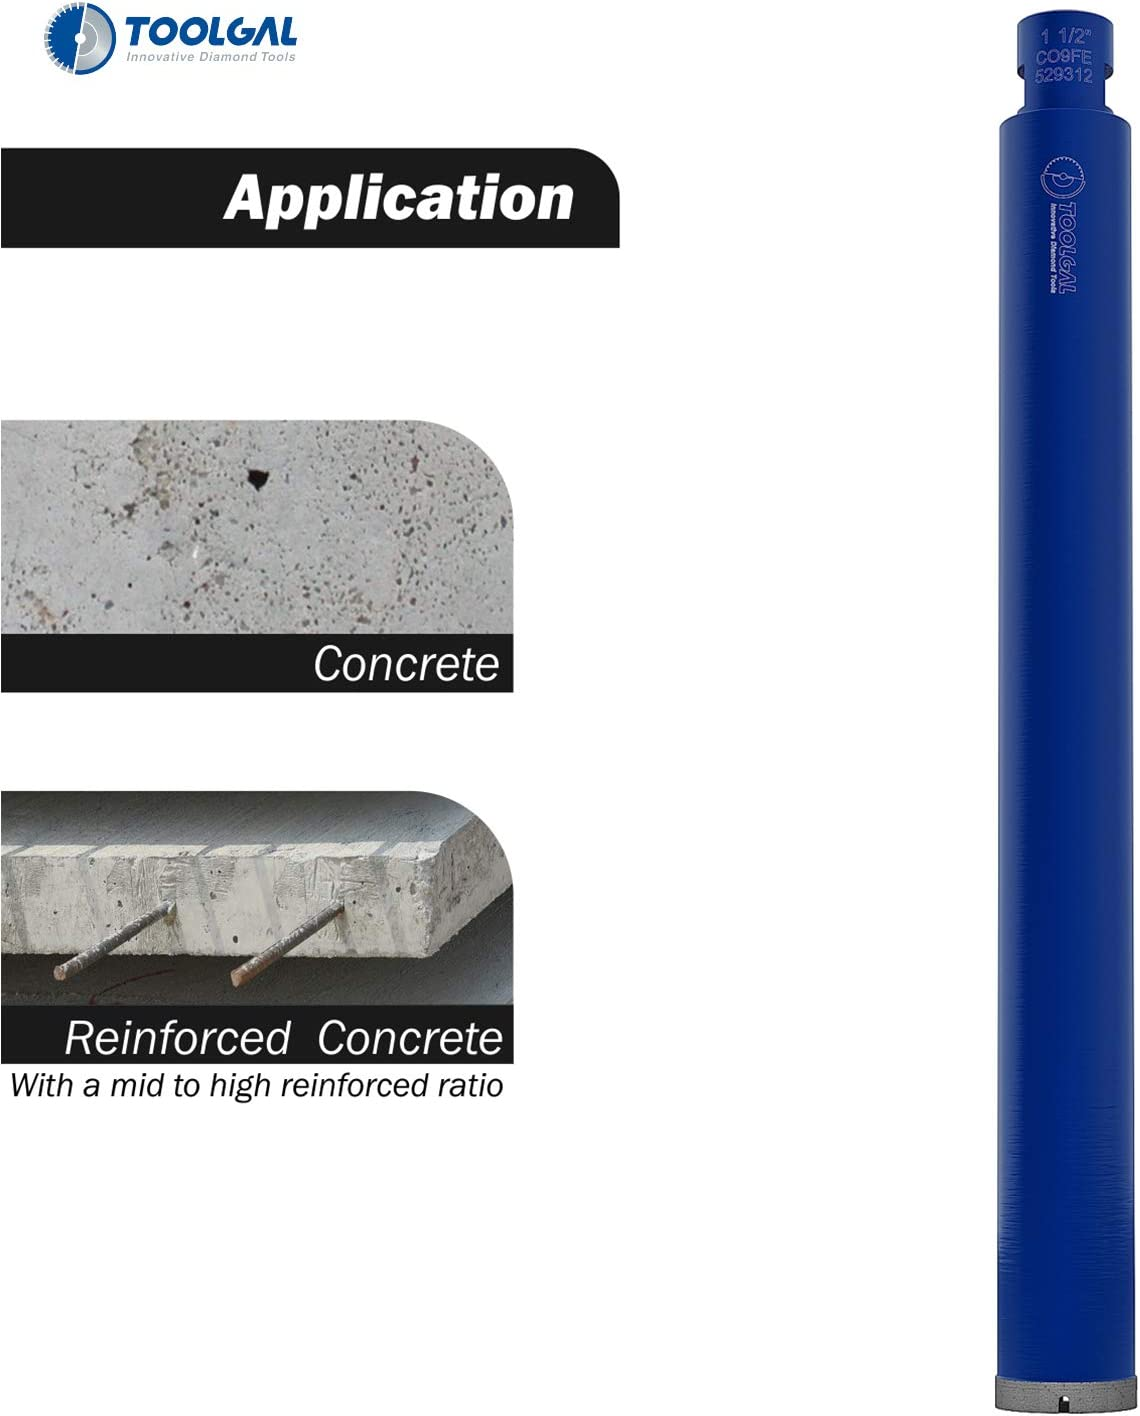 """Diamond Core Drill Bit Toolgal 1 1//2/"""" Wet Drilling only for Use with Fixed or Hand-Held Core Drilling Machines with Water Feed to Drill Holes in Construction Materials Such as Concrete 40mm Reinf"""